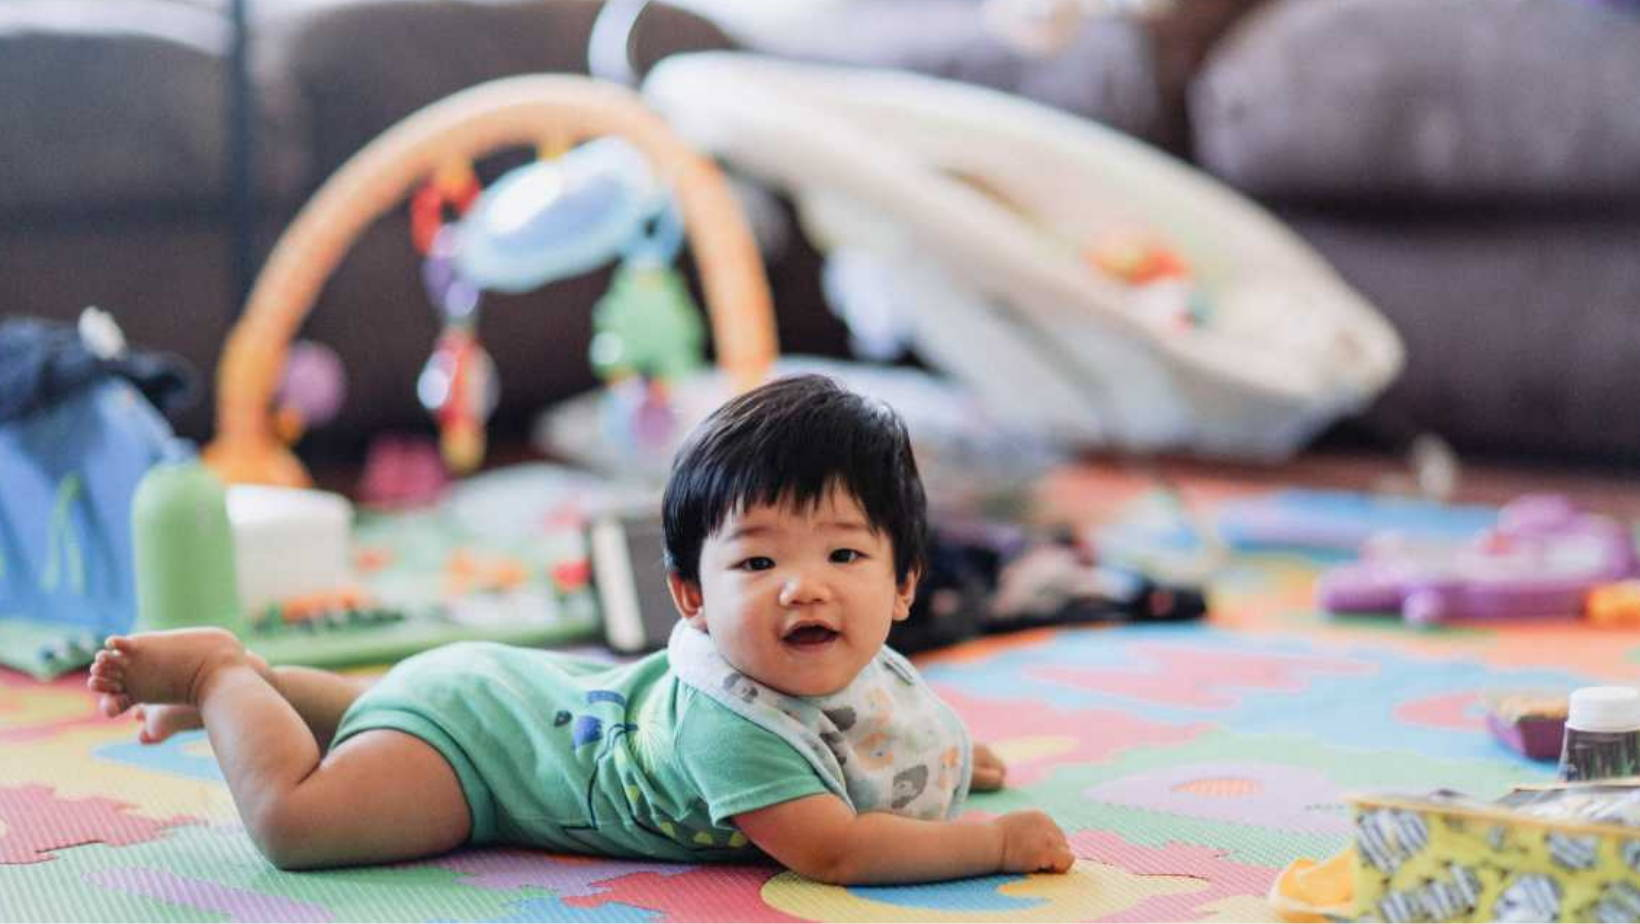 Tummy time helps baby learn to roll over